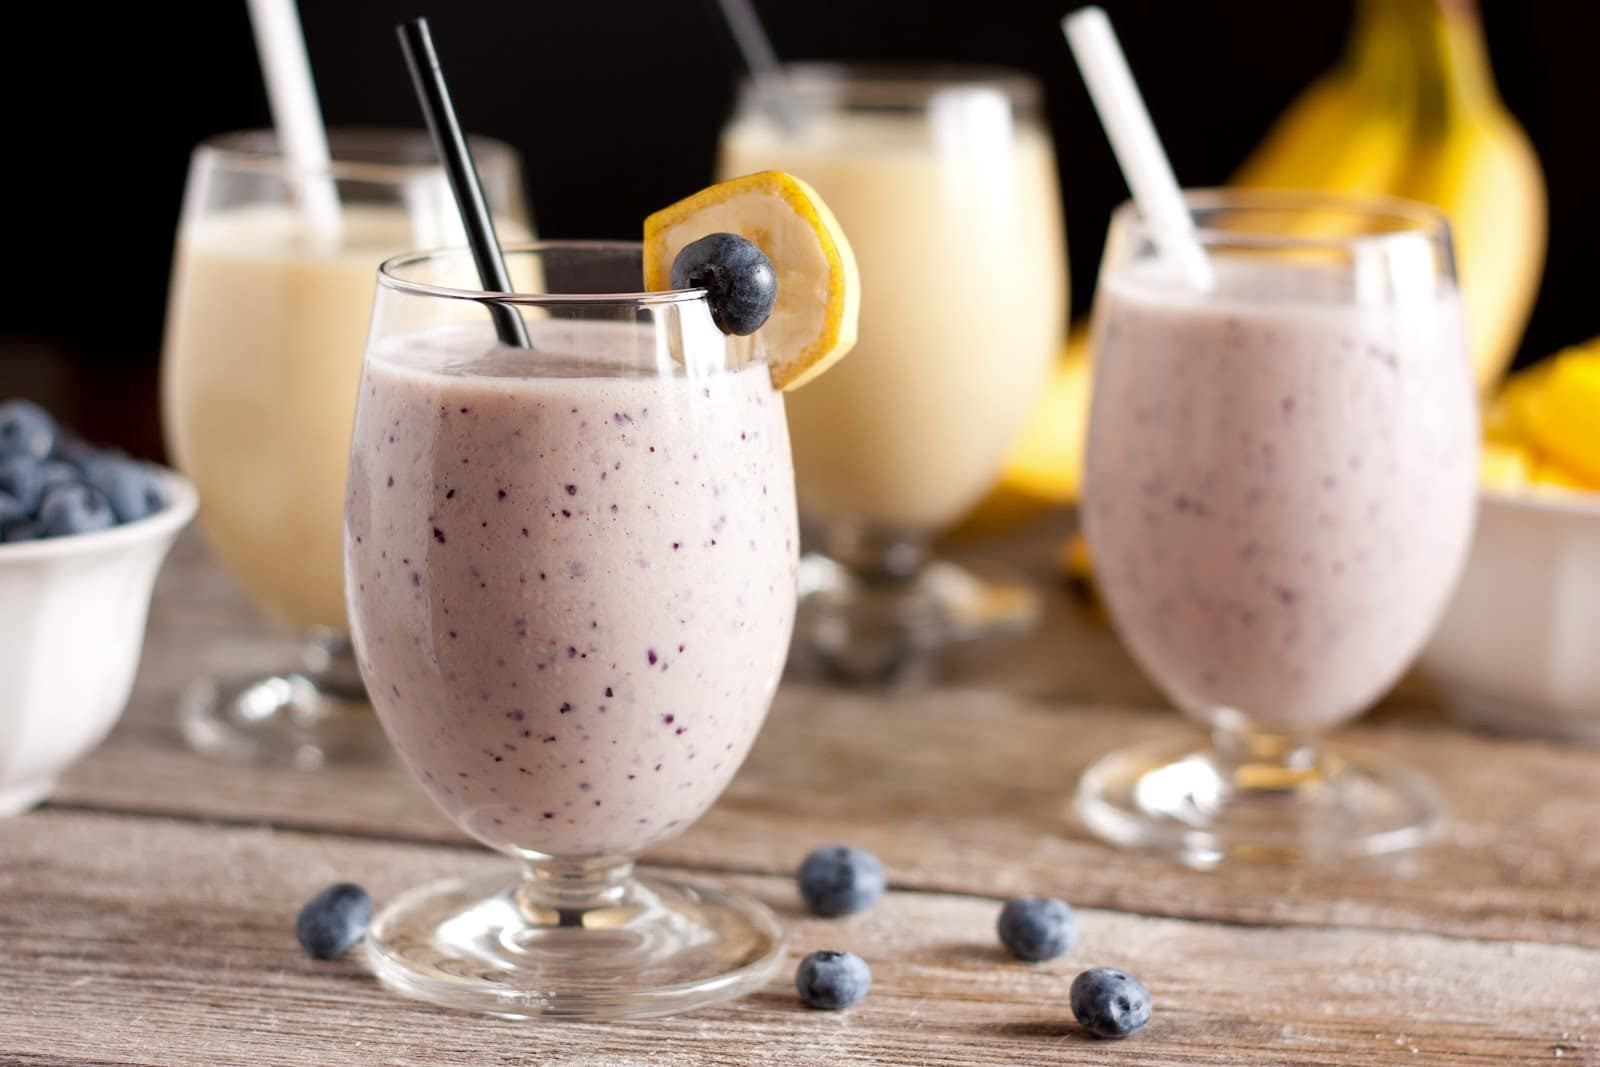 Healthy Shakes And Smoothies  Nutritional Smoothie Recipe — Dishmaps